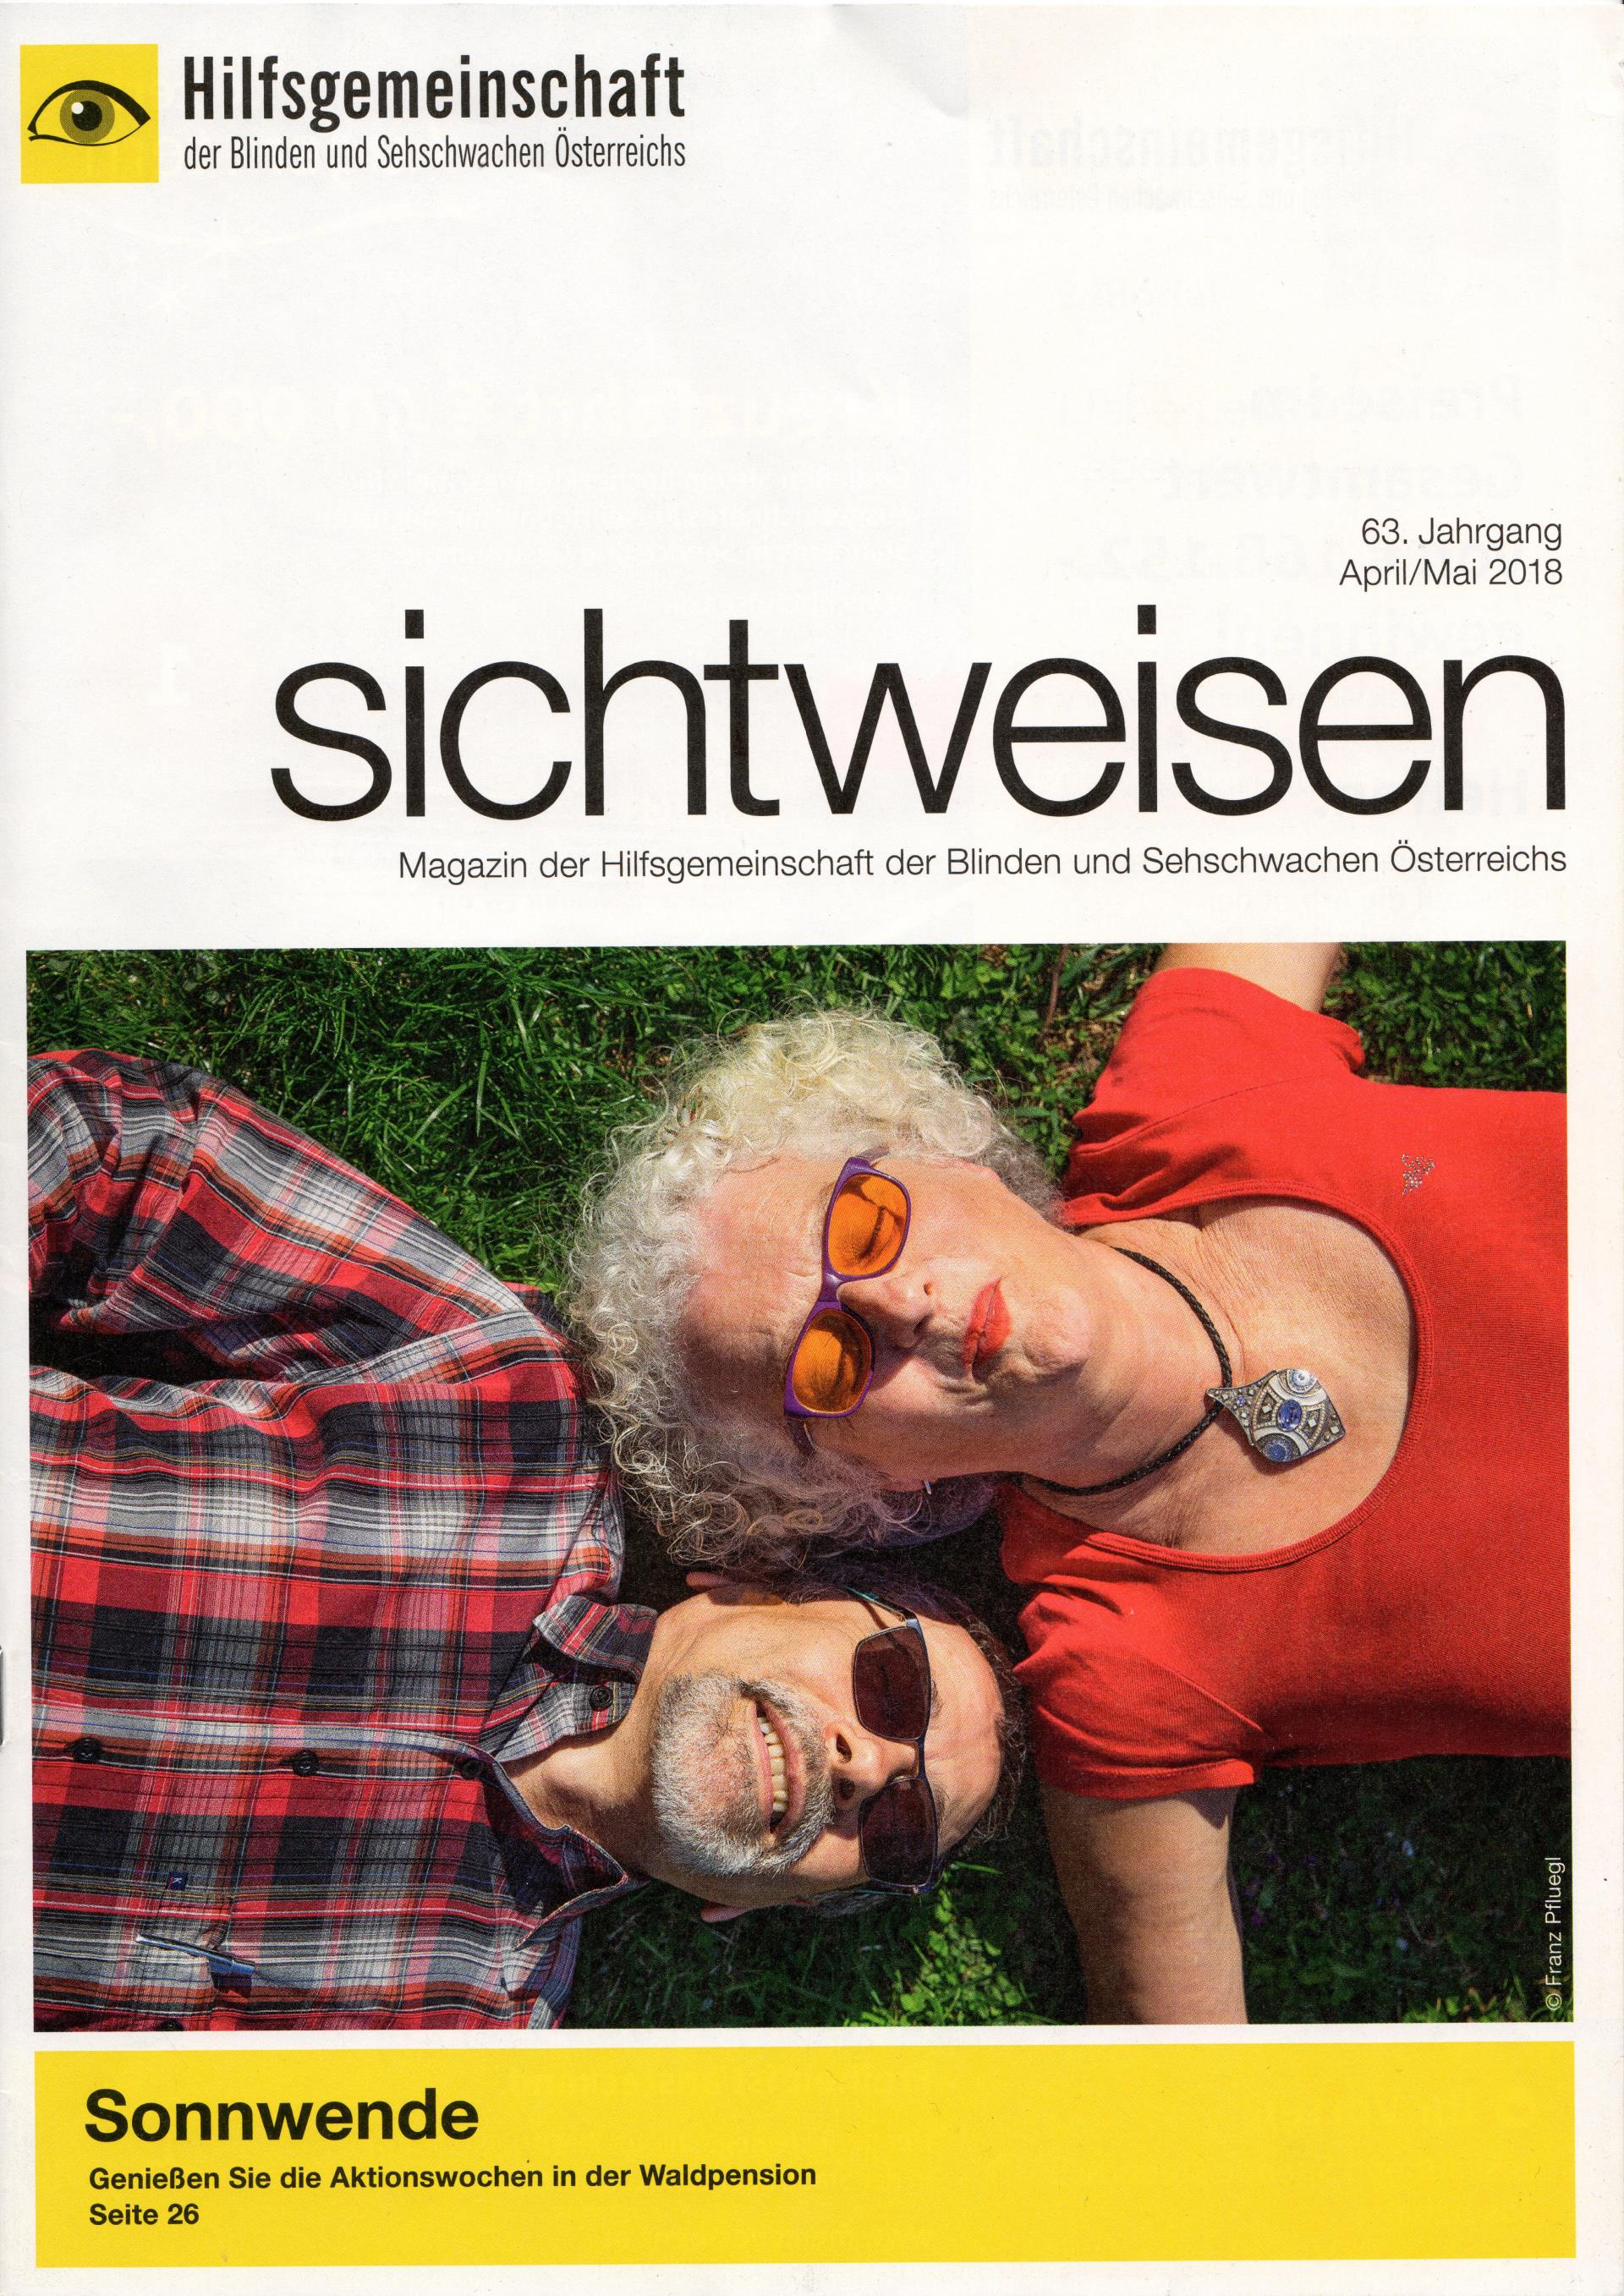 We were published in the German magazine Sichtweisen